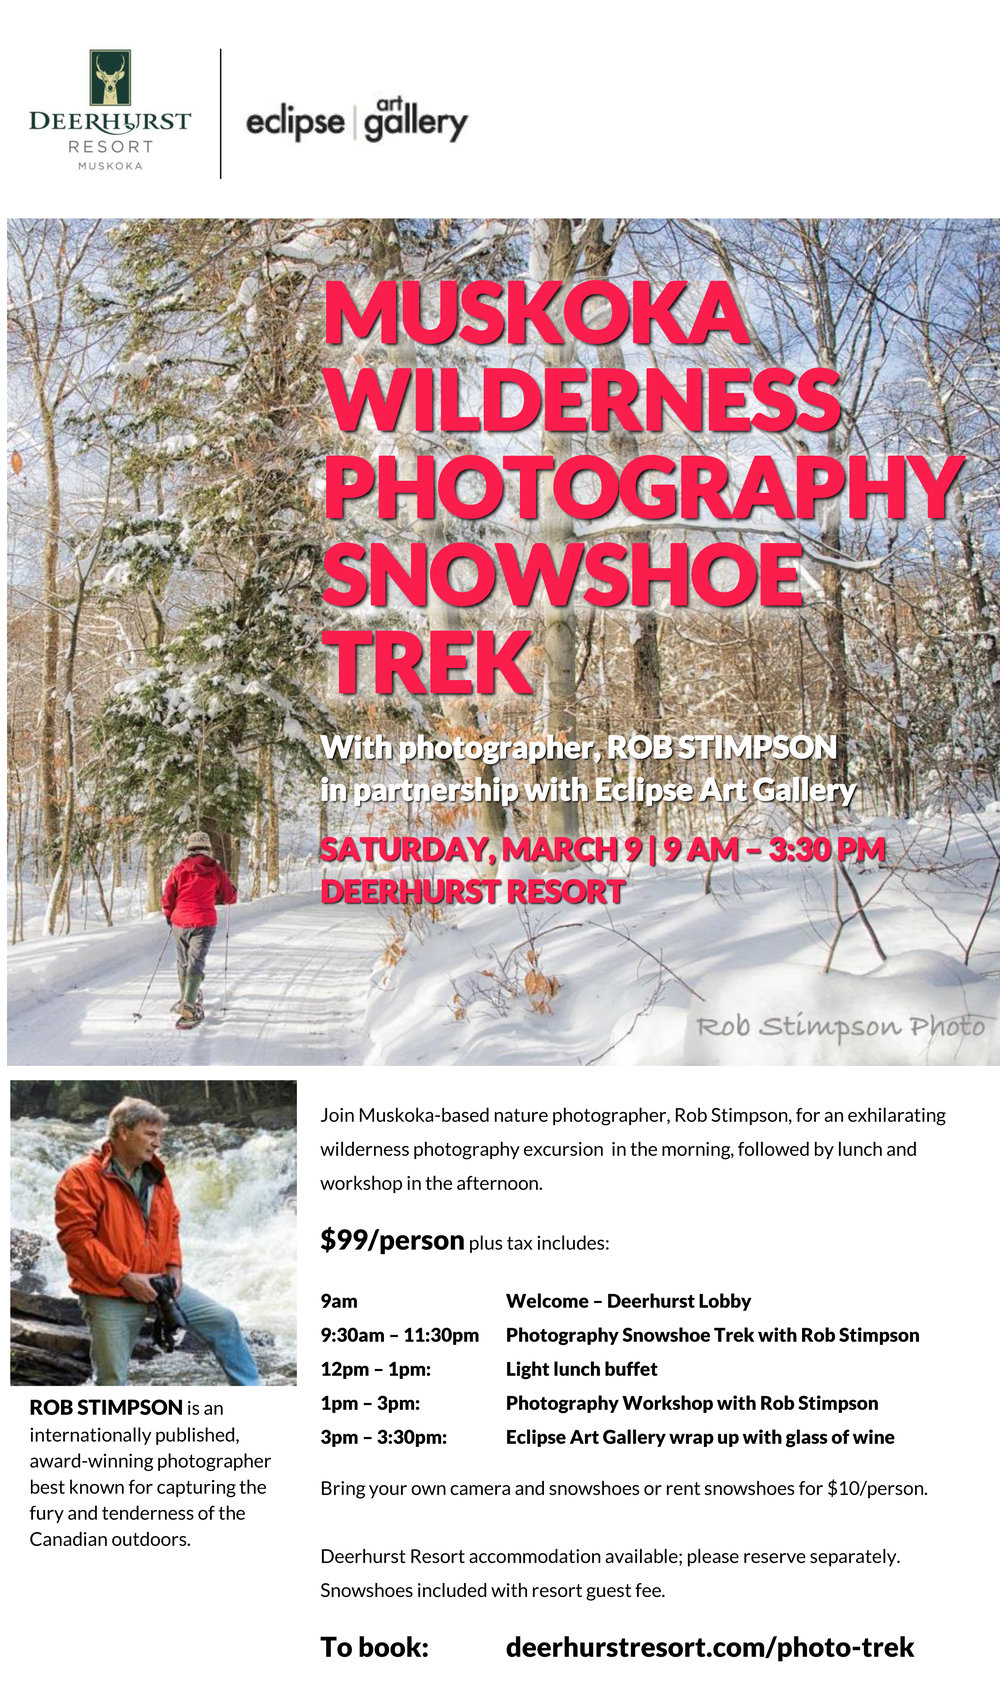 Winter Photography Snowshoe Trek_rob_stimpson_eclipse_ART_GALLERY_deerhurst_resort